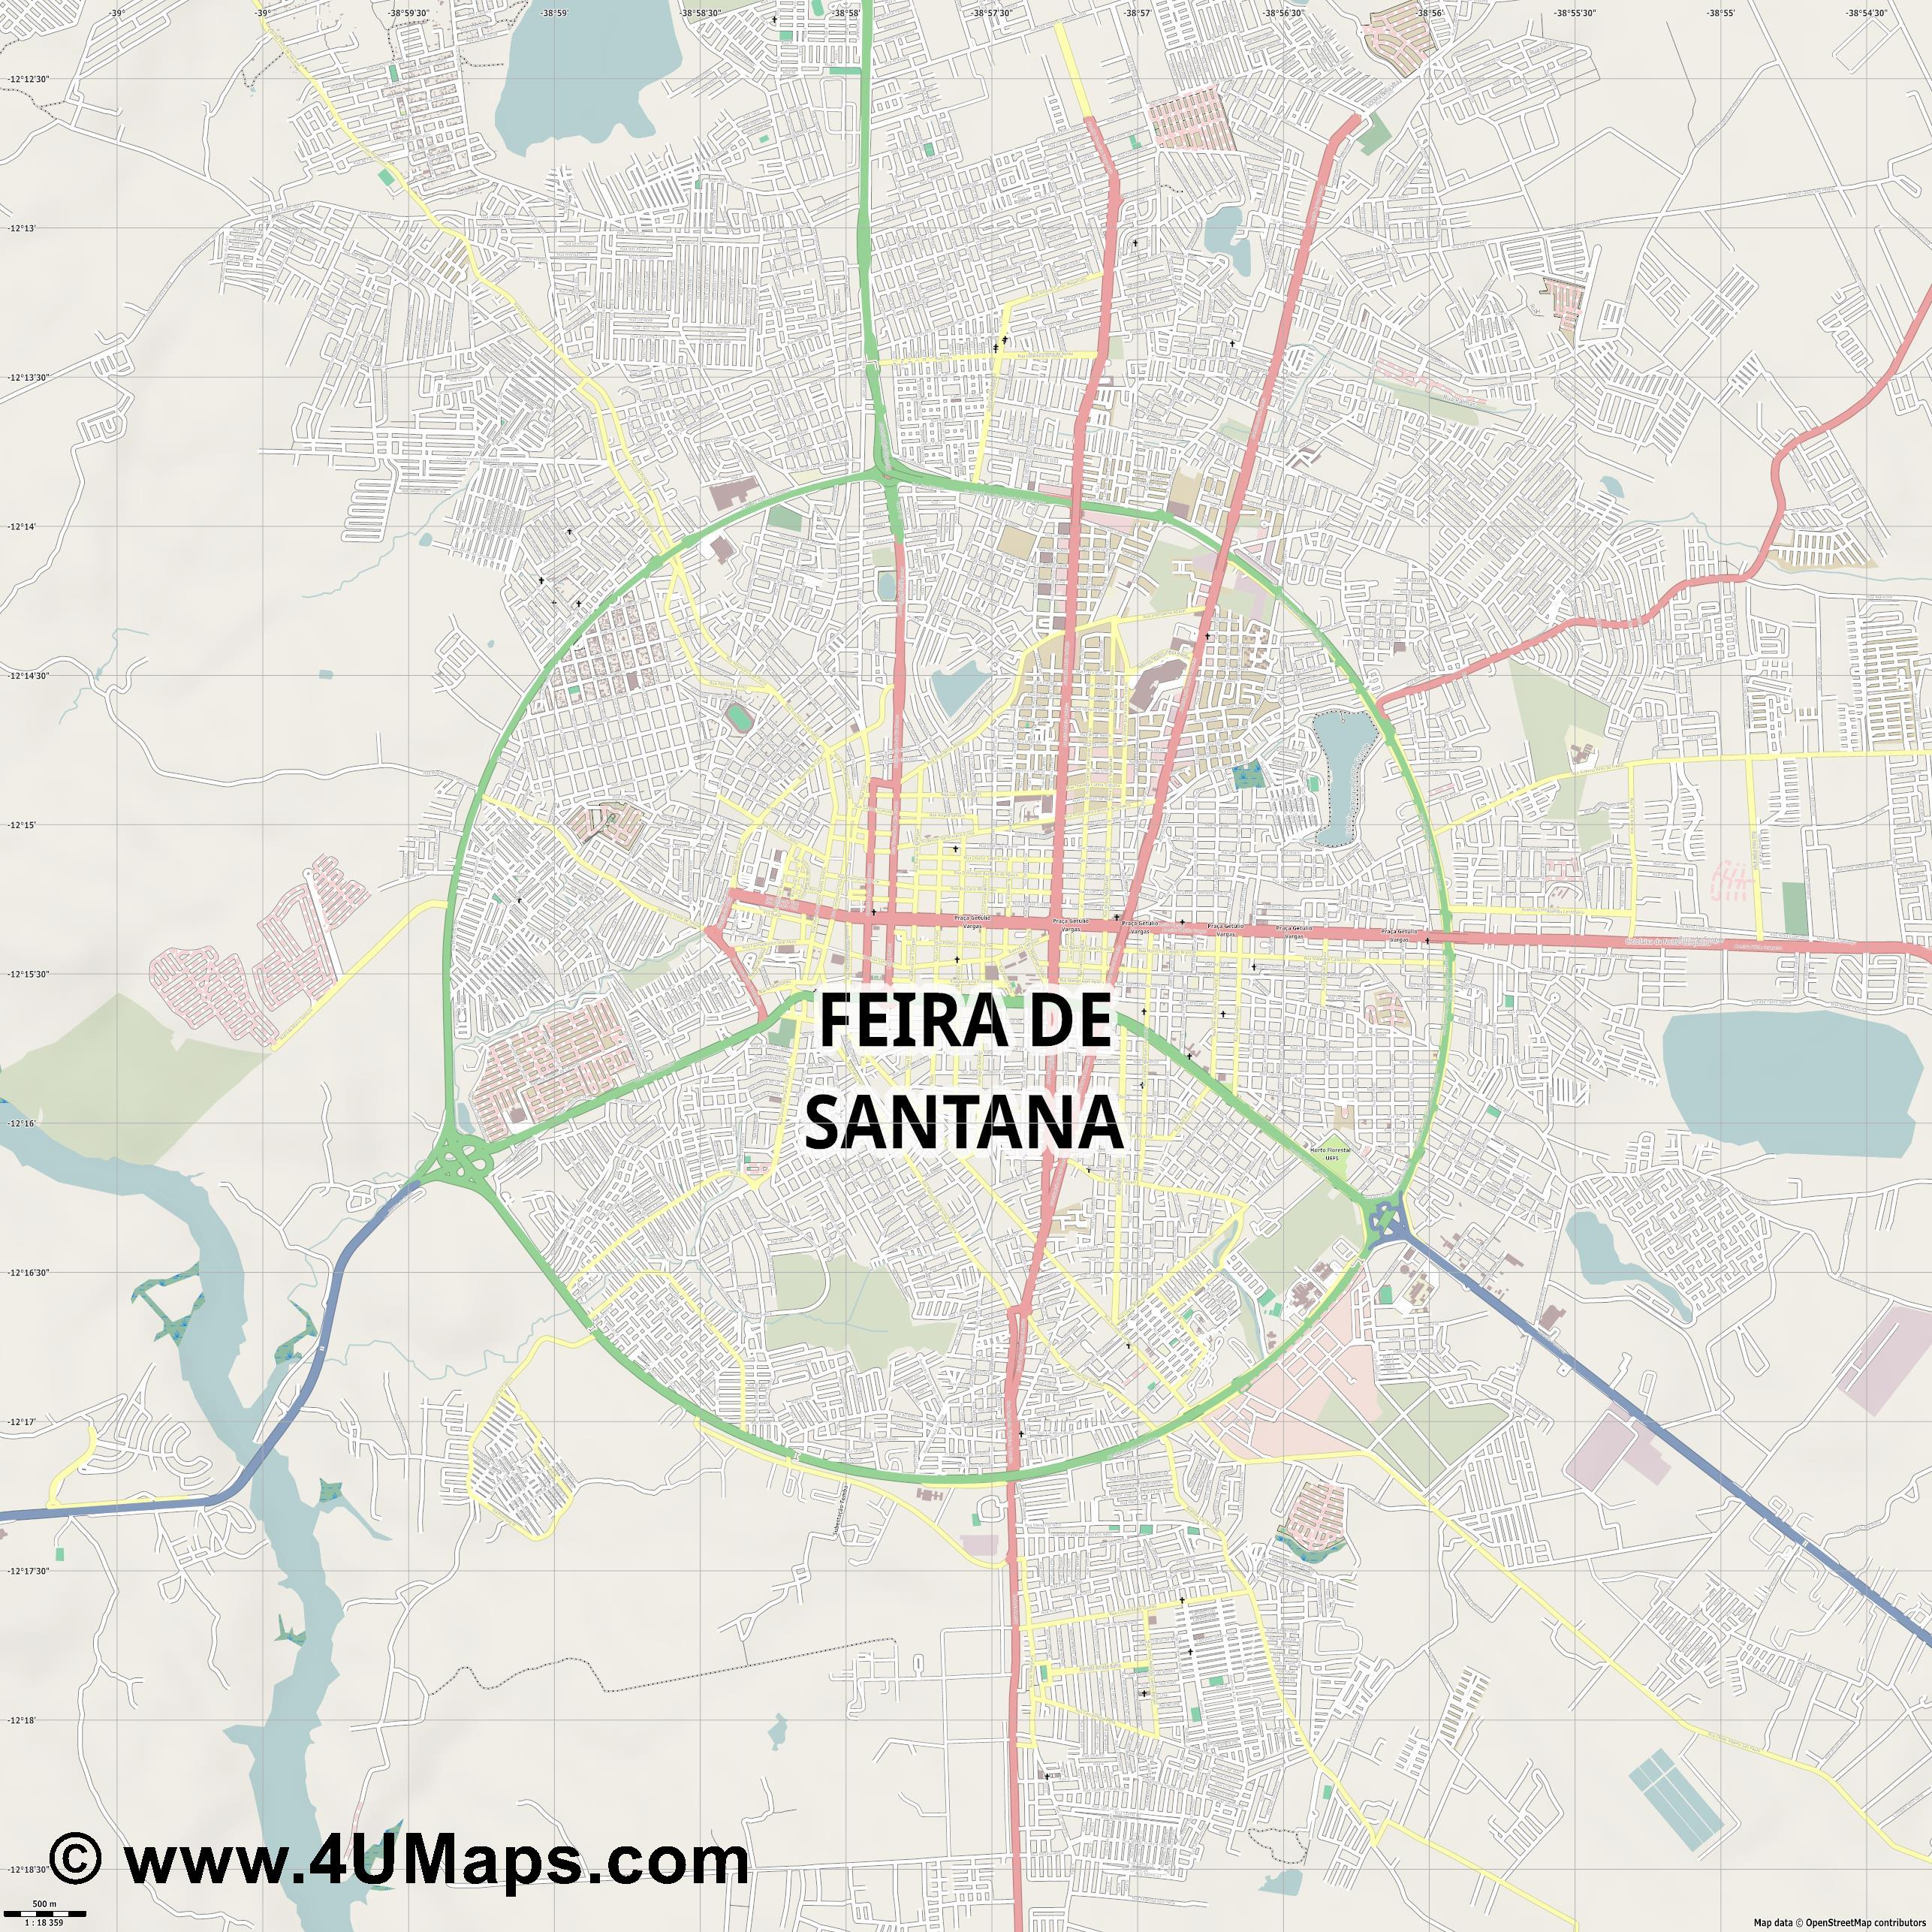 Feira de Santana  jpg ultra high detail preview vector city map